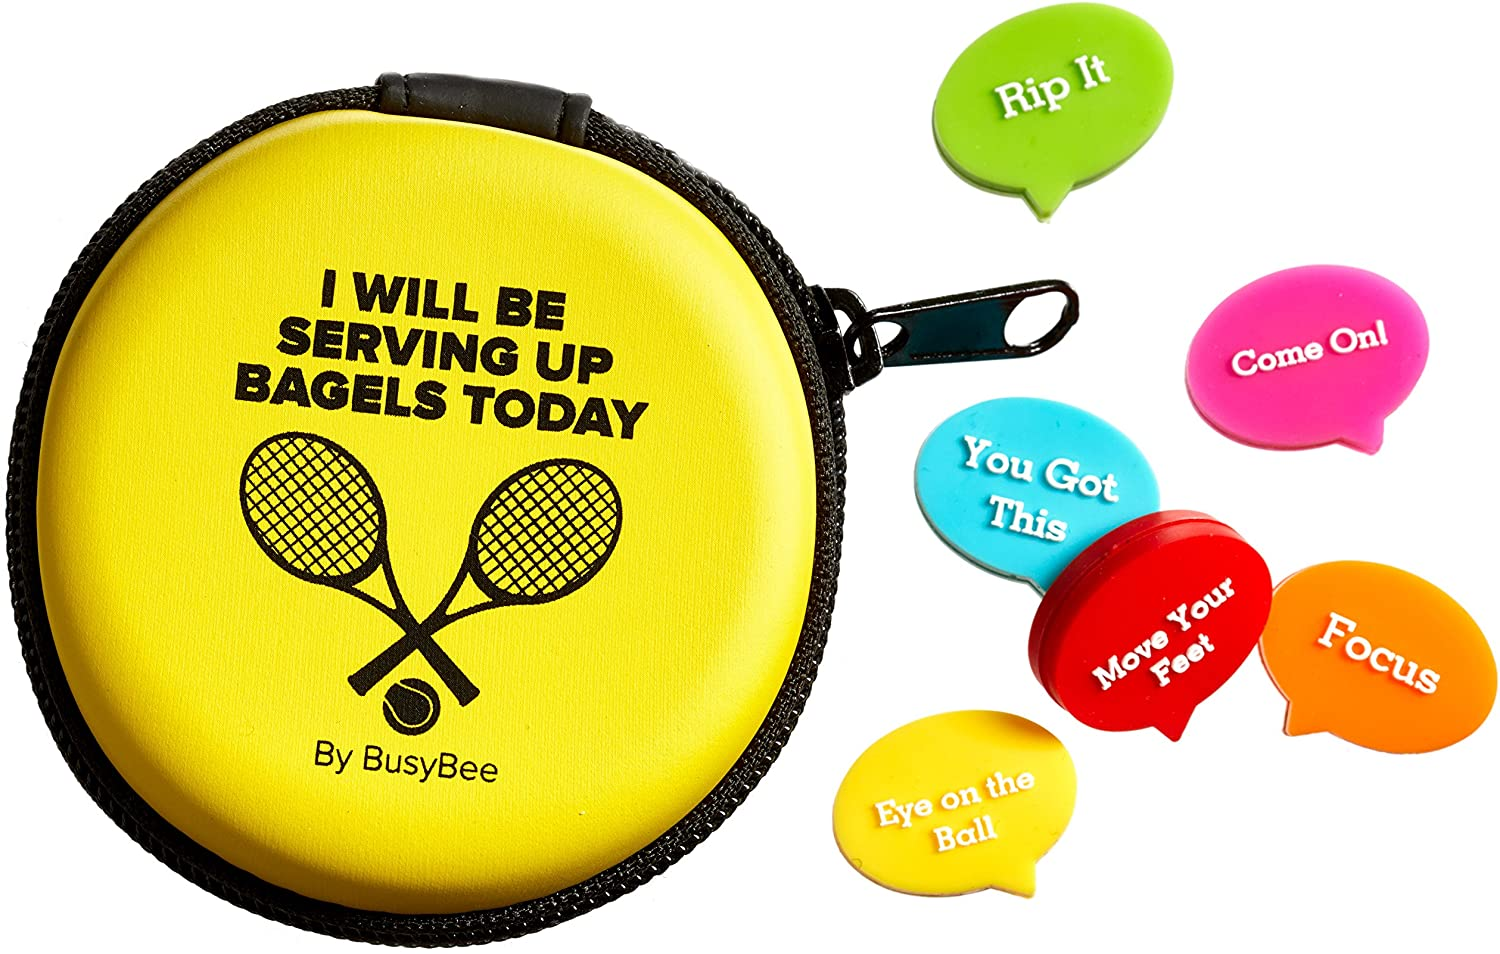 BusyBee Tennis Vibration Dampener in Fun Zipper Gift Pack. Best Shock Absorber (6 Count) Plus a Bonus: Exclusive Mobile App 3 Months Trial : Sports & Outdoors